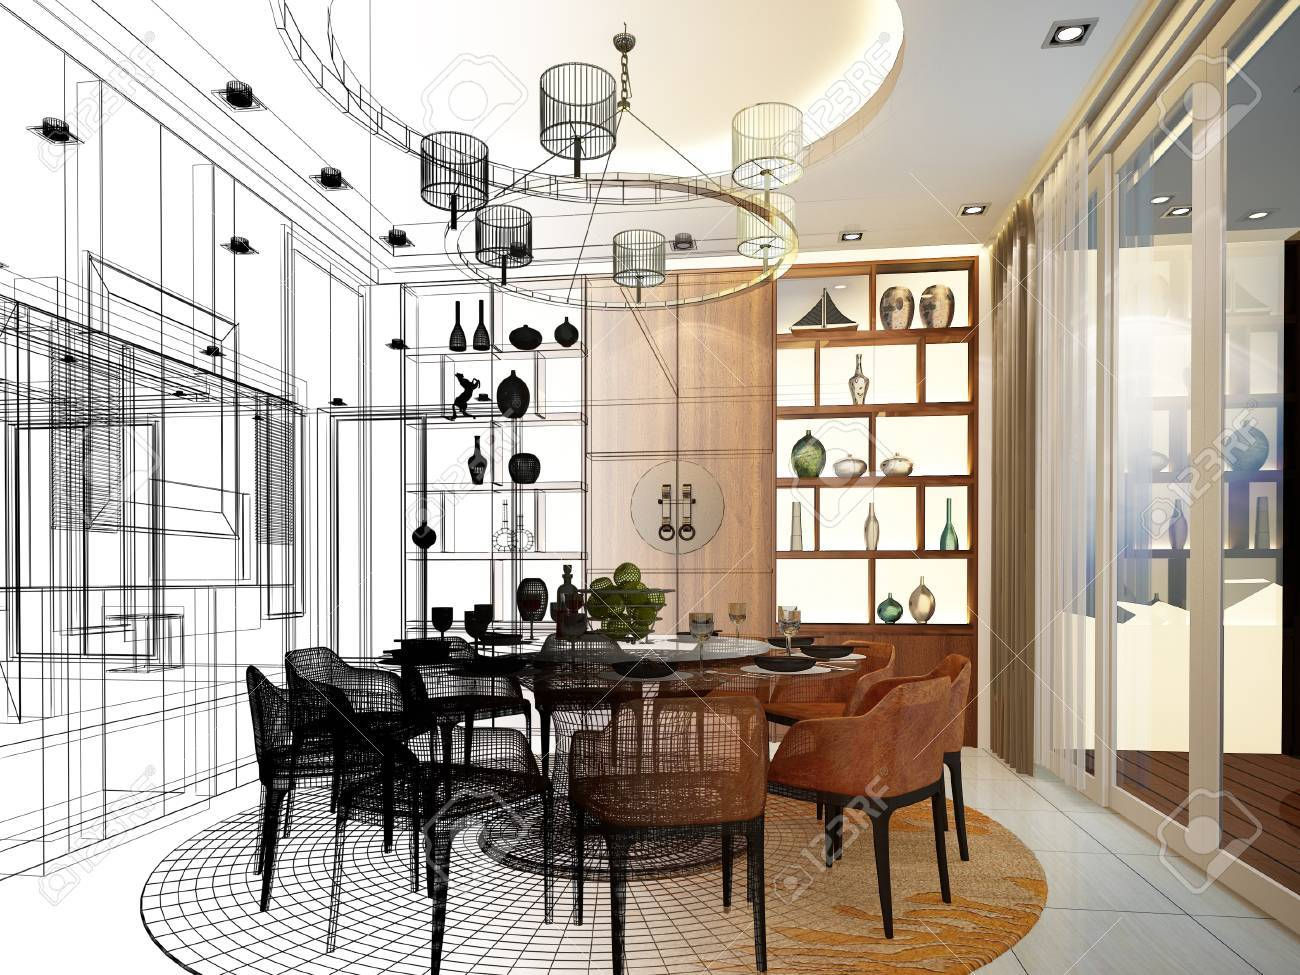 Abstract Sketch Design Of Interior Dining Room Stock Photo Picture